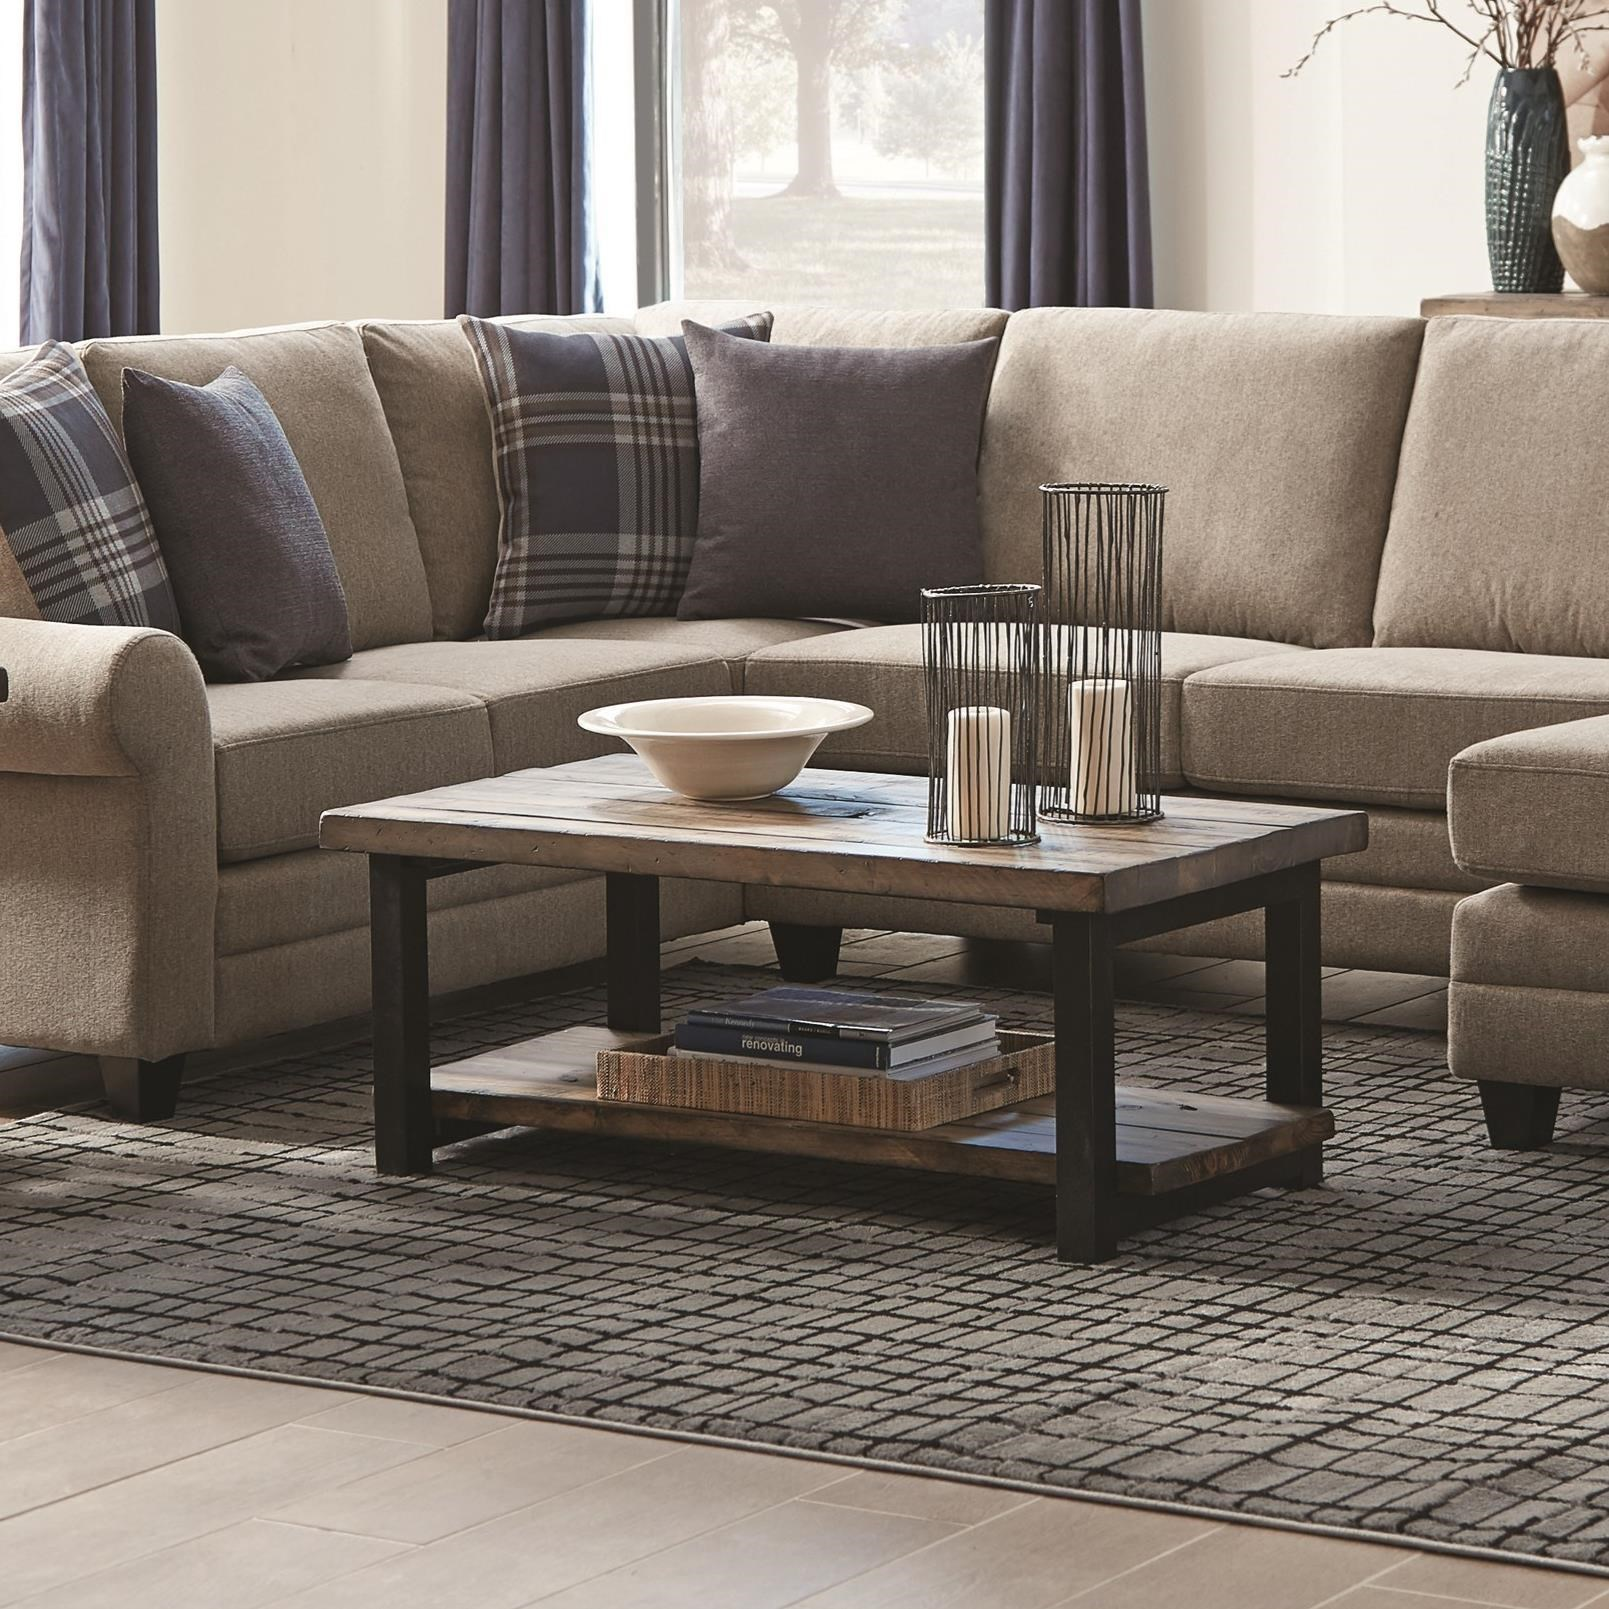 Scott Living Composition Coffee Table - Item Number: 705678